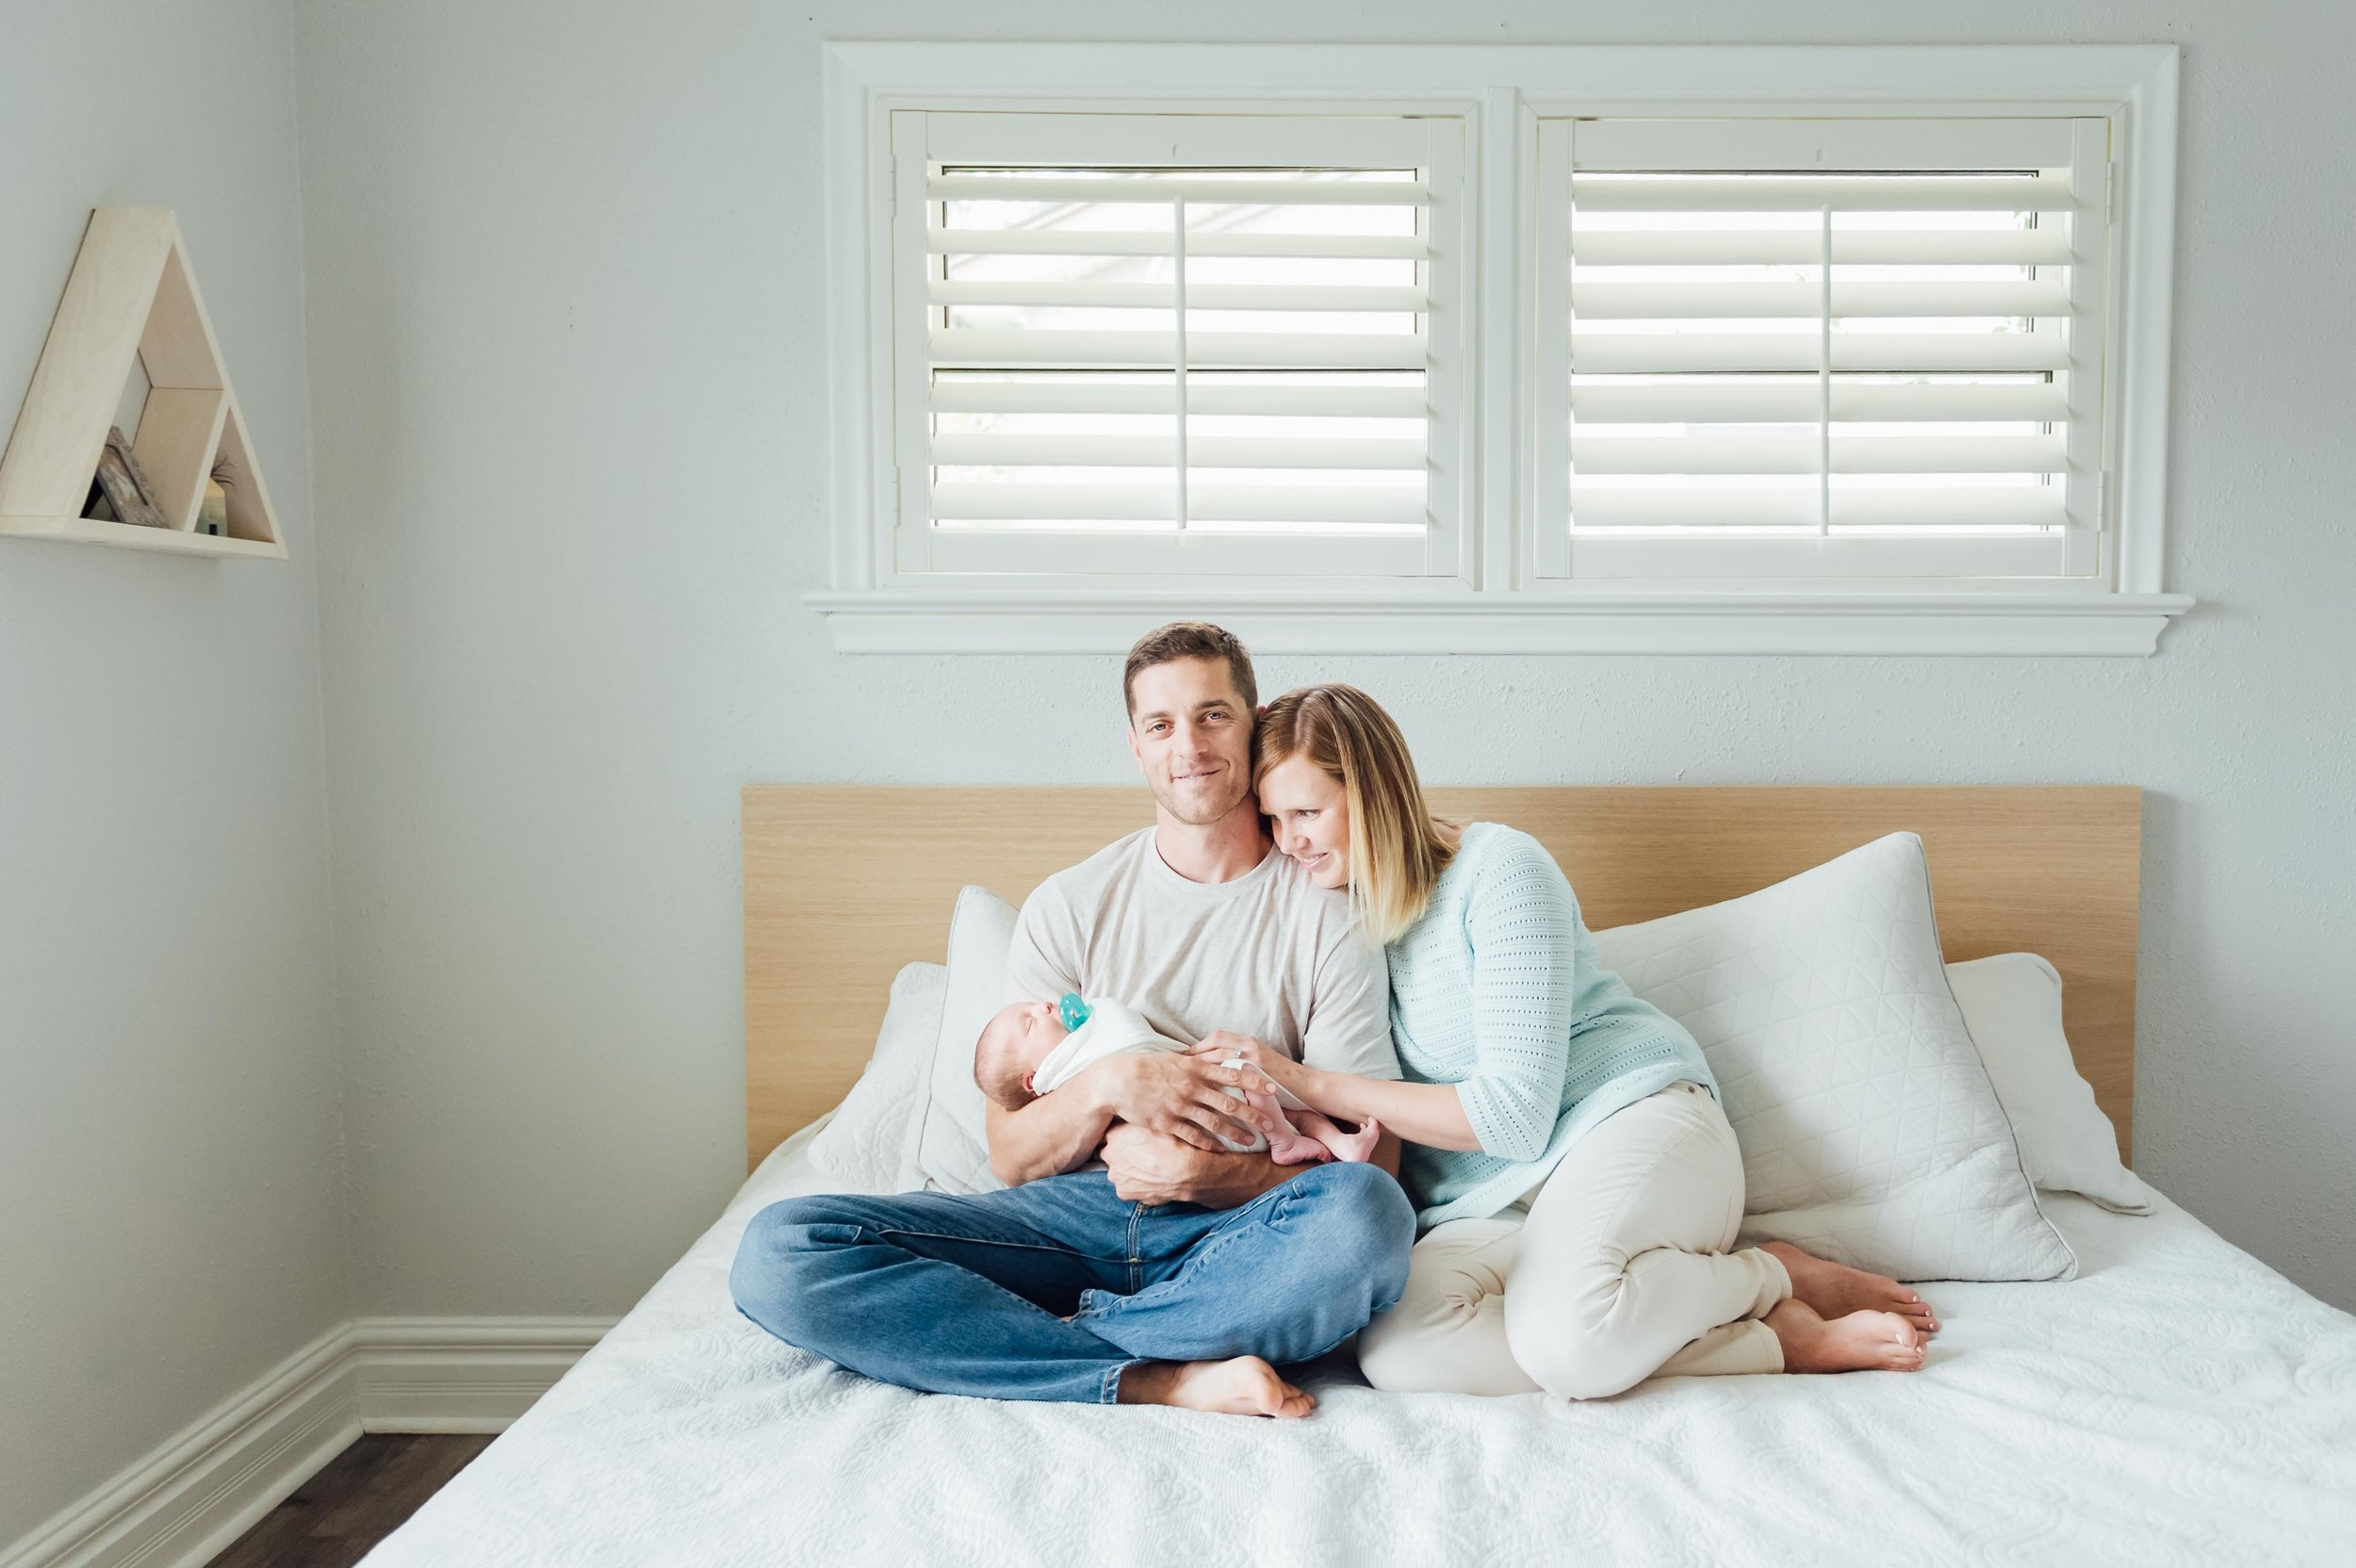 new parents with newborn baby boy at home in master bedroom - Niagara Newborn Lifestyle Photographer